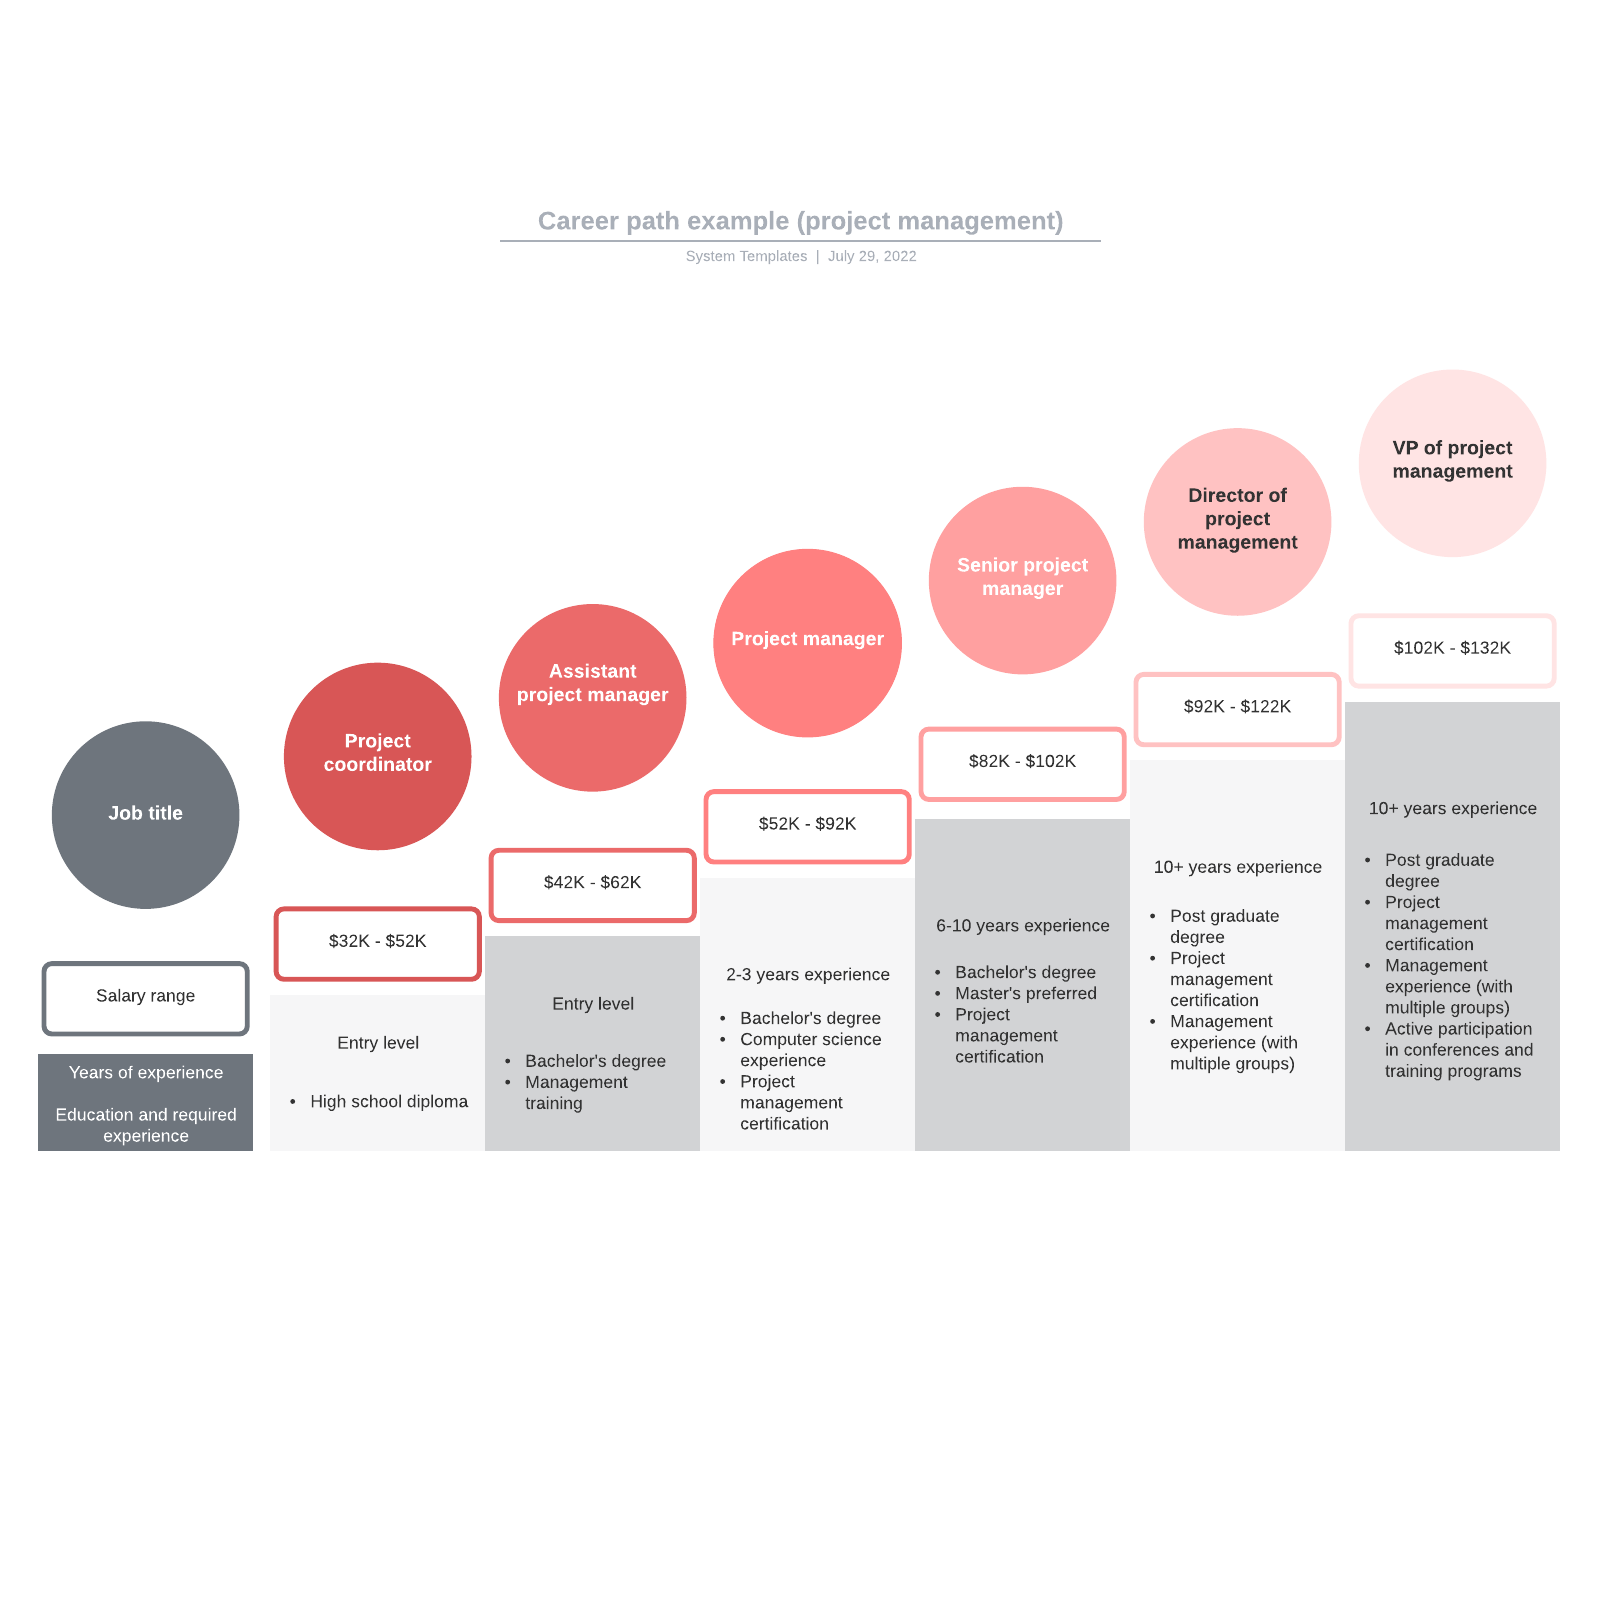 Career path example (project management)